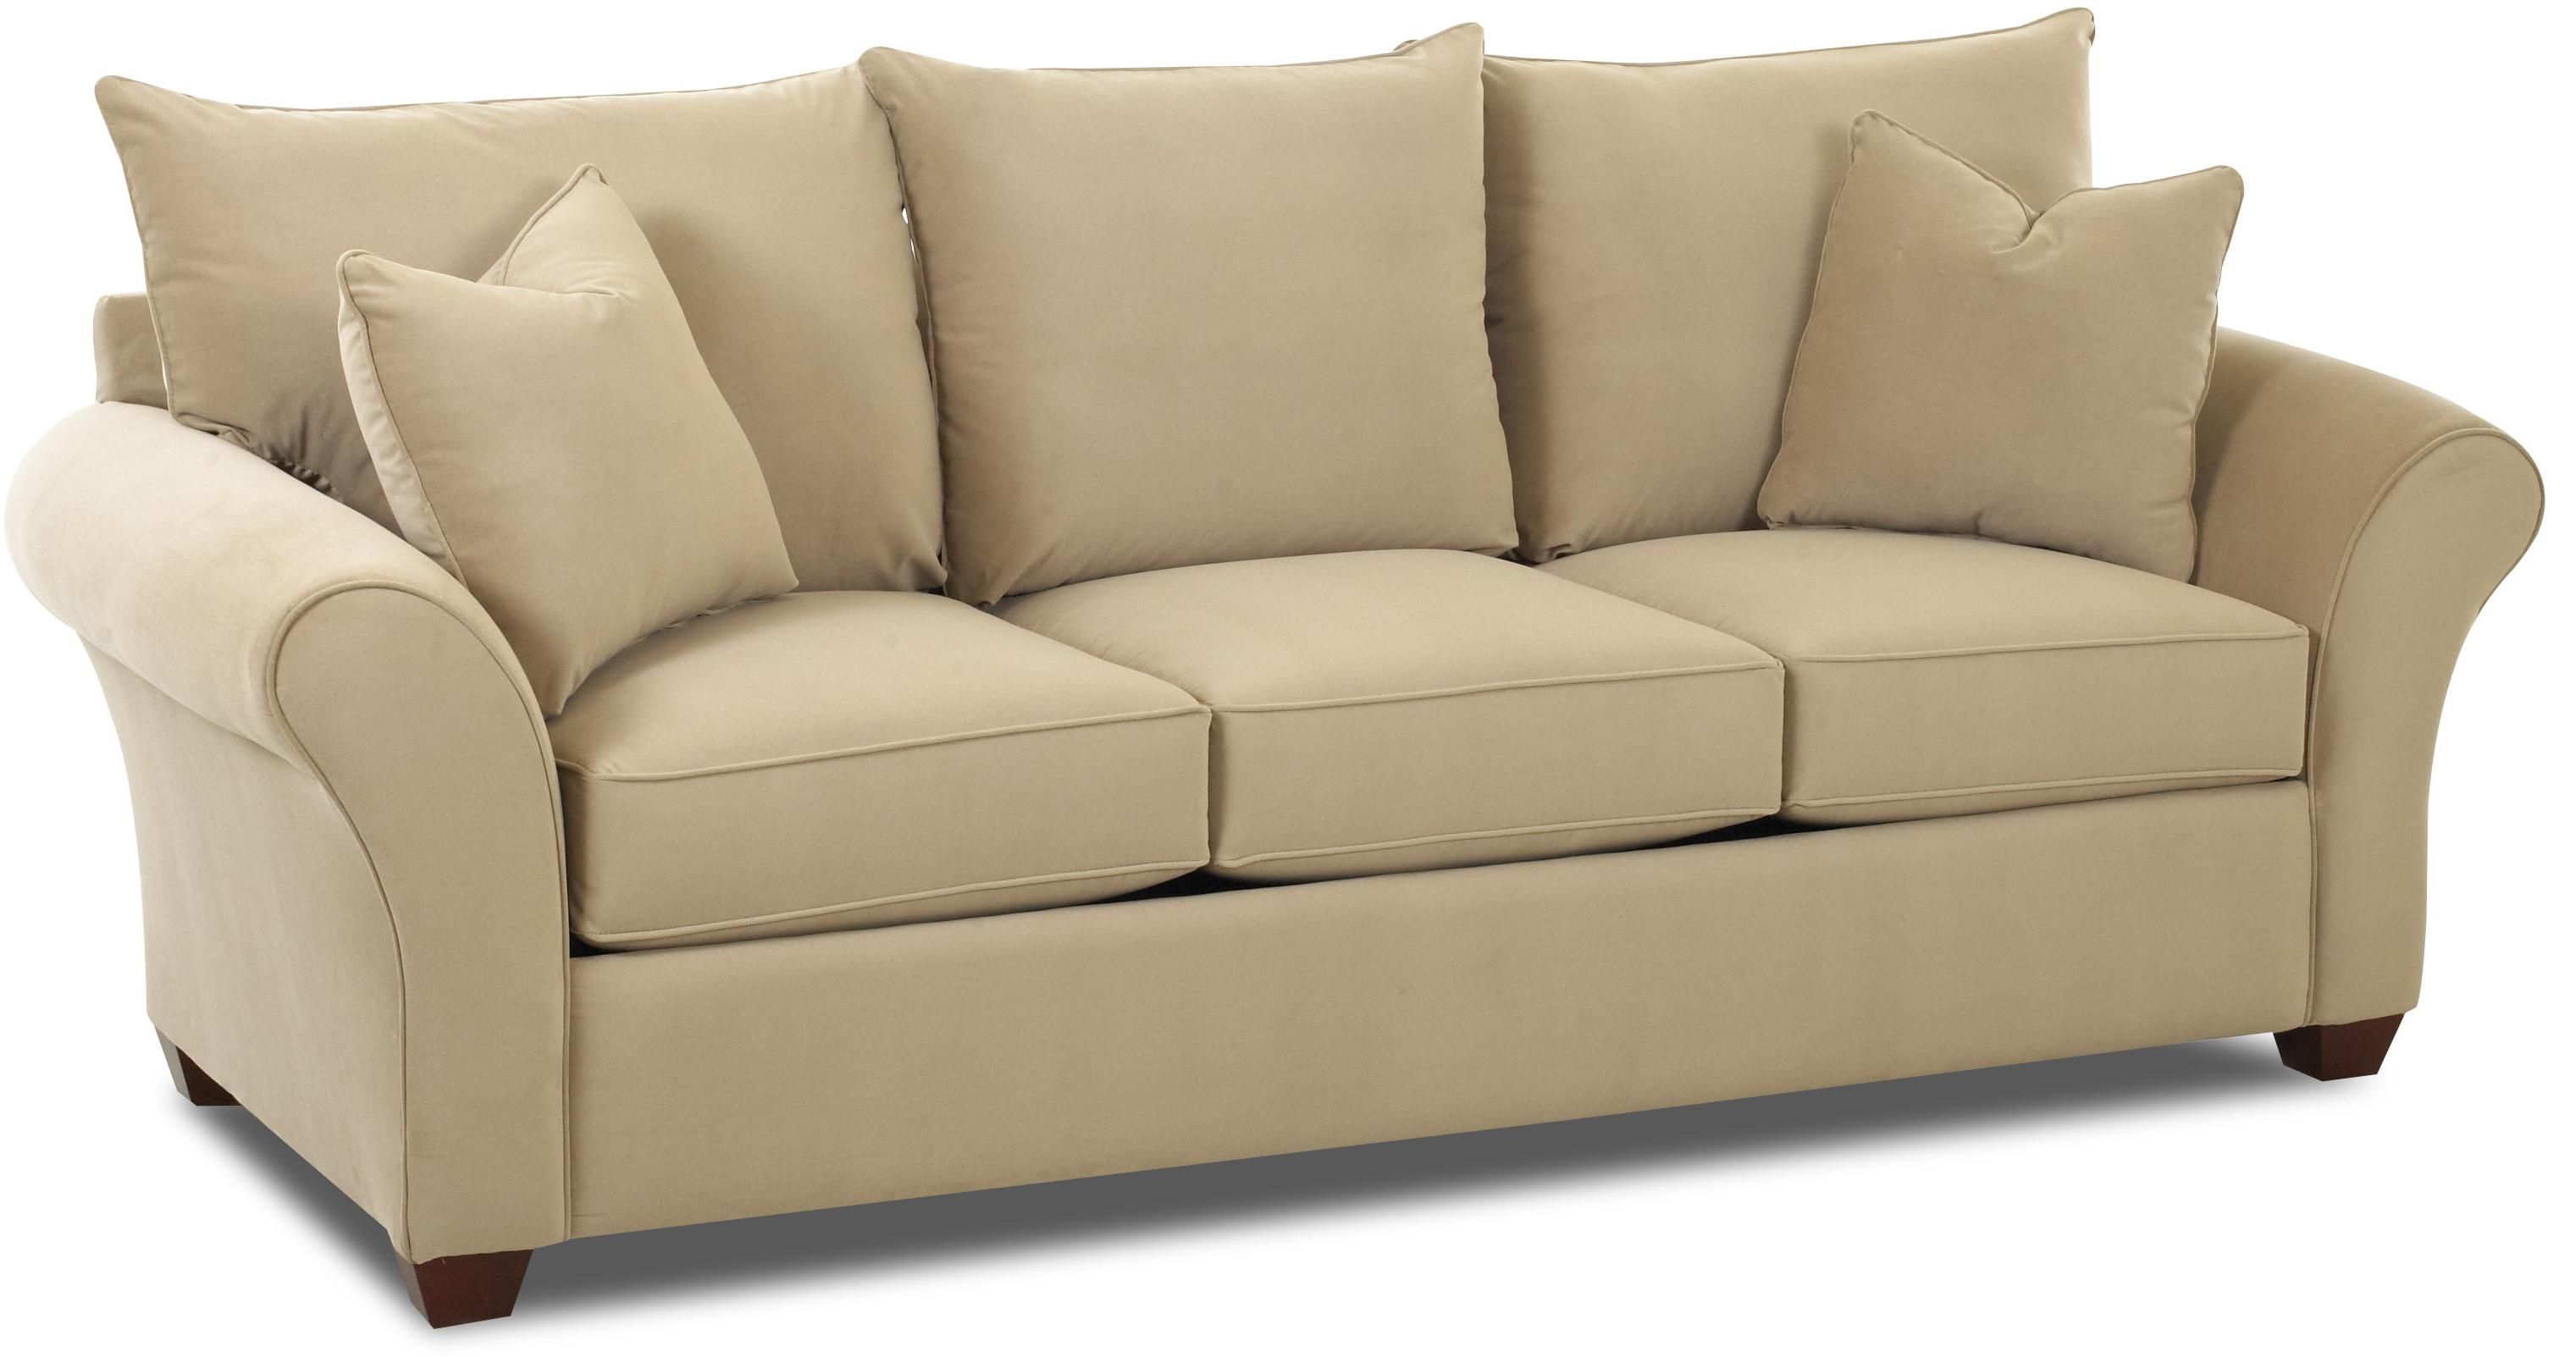 queen sleeper sofa rooms to go air chair price in desh klaussner fletcher innerspring old